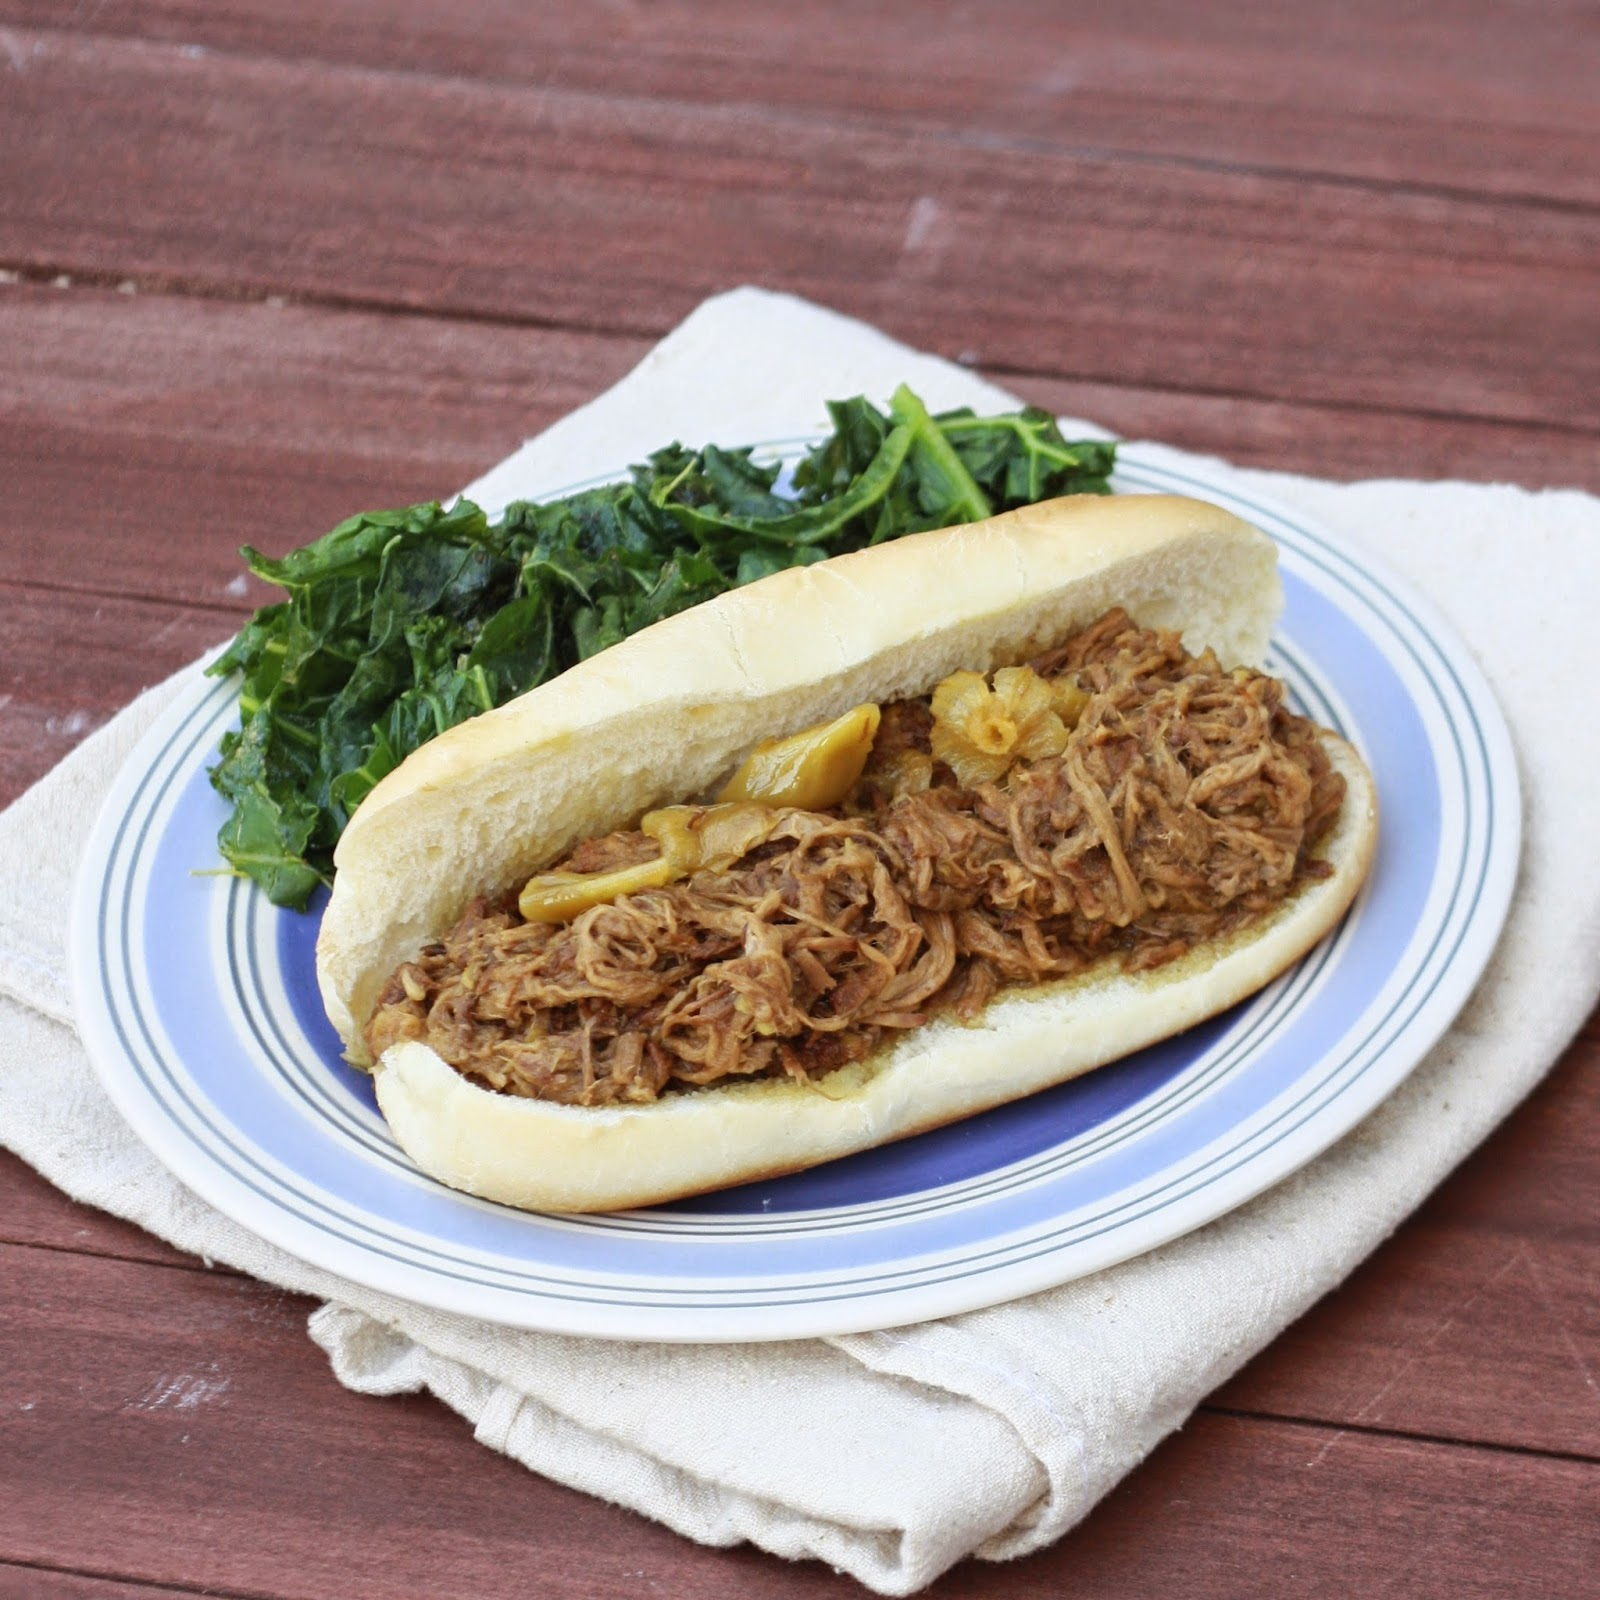 Slow Cooker Italian Beef Sandwiches | The Sweets Life